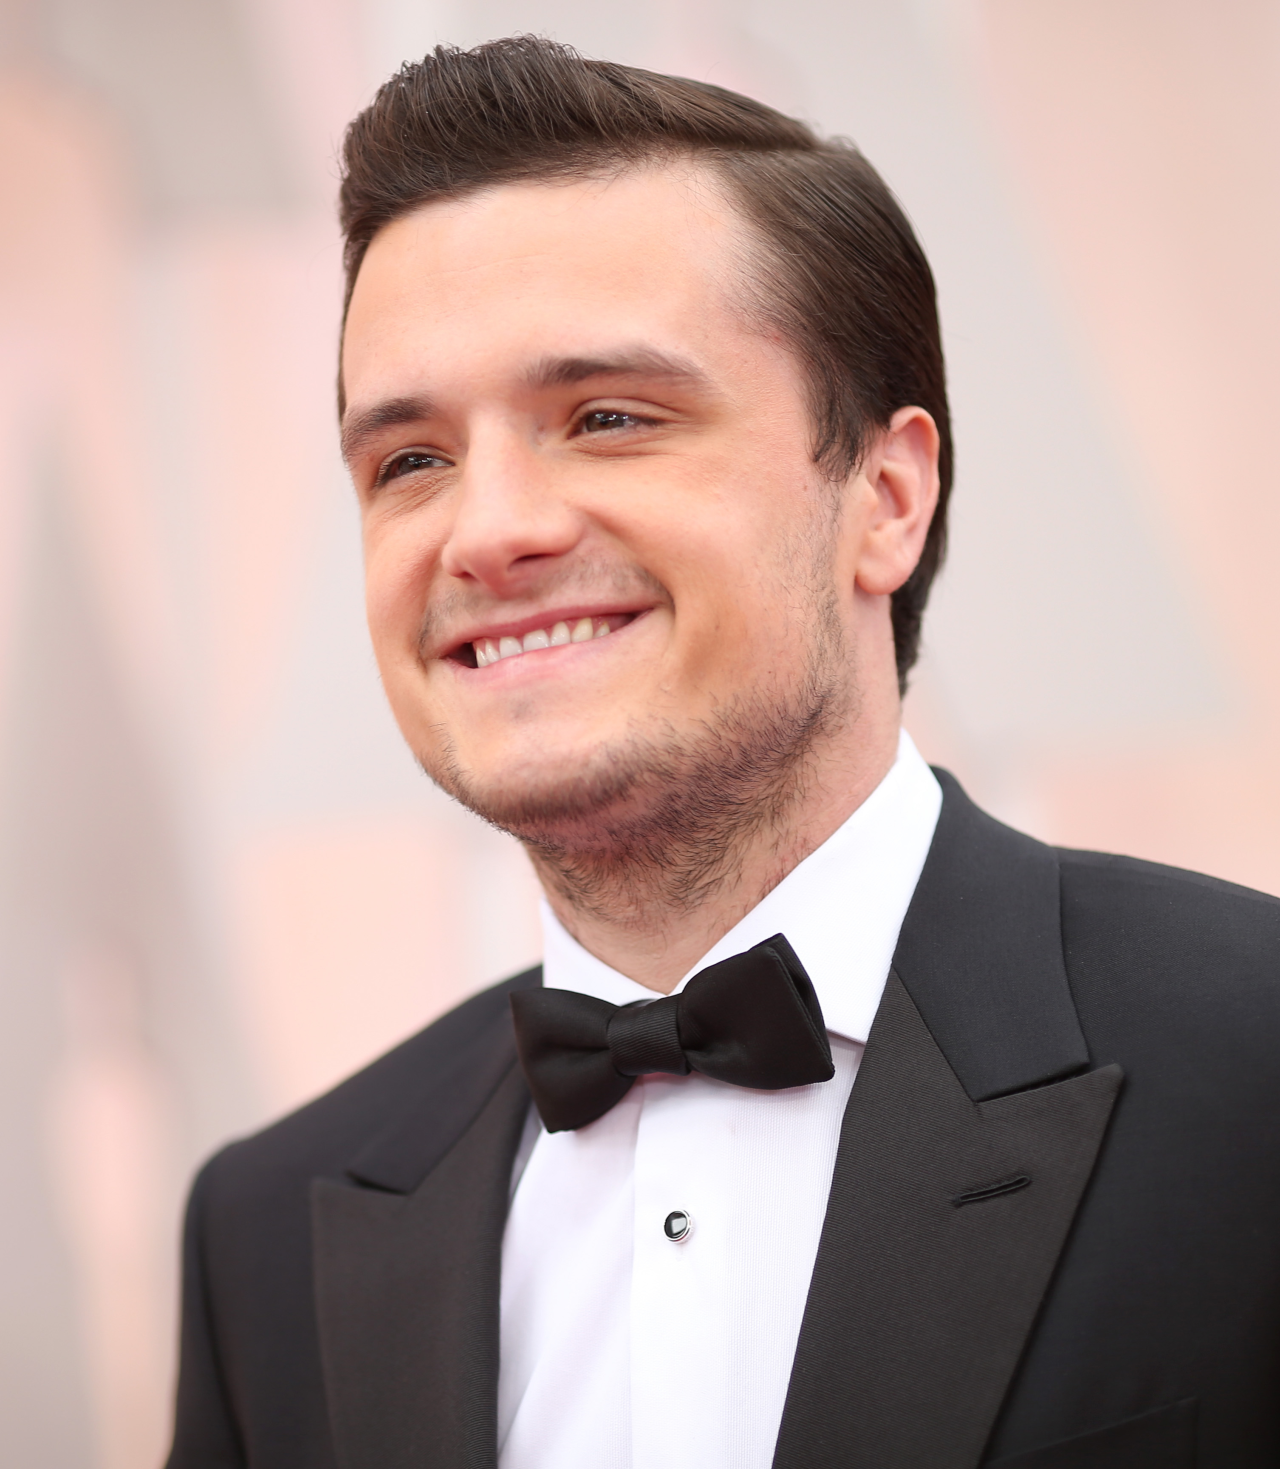 Julianne Moore Wins Josh Hutcherson Presents at the Oscars - The Hunger Games News